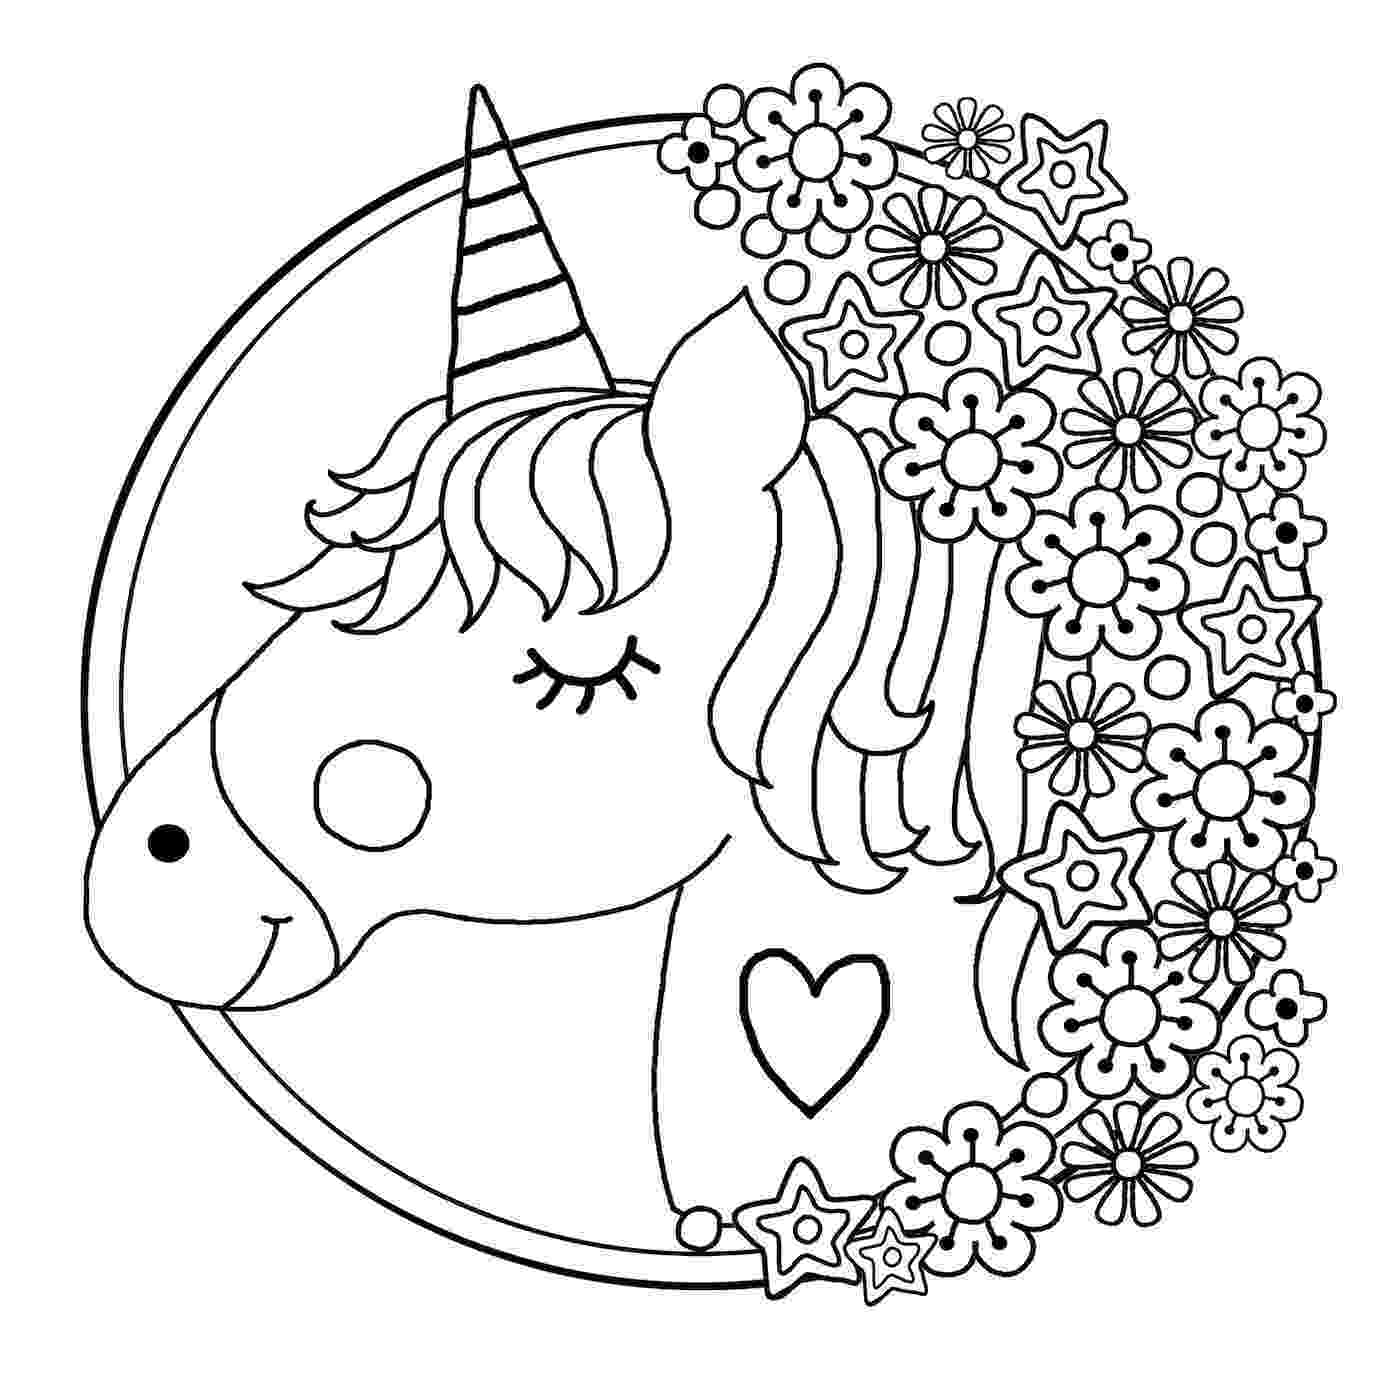 unicorn coloring pictures cute unicorn coloring page free printable coloring pages coloring unicorn pictures